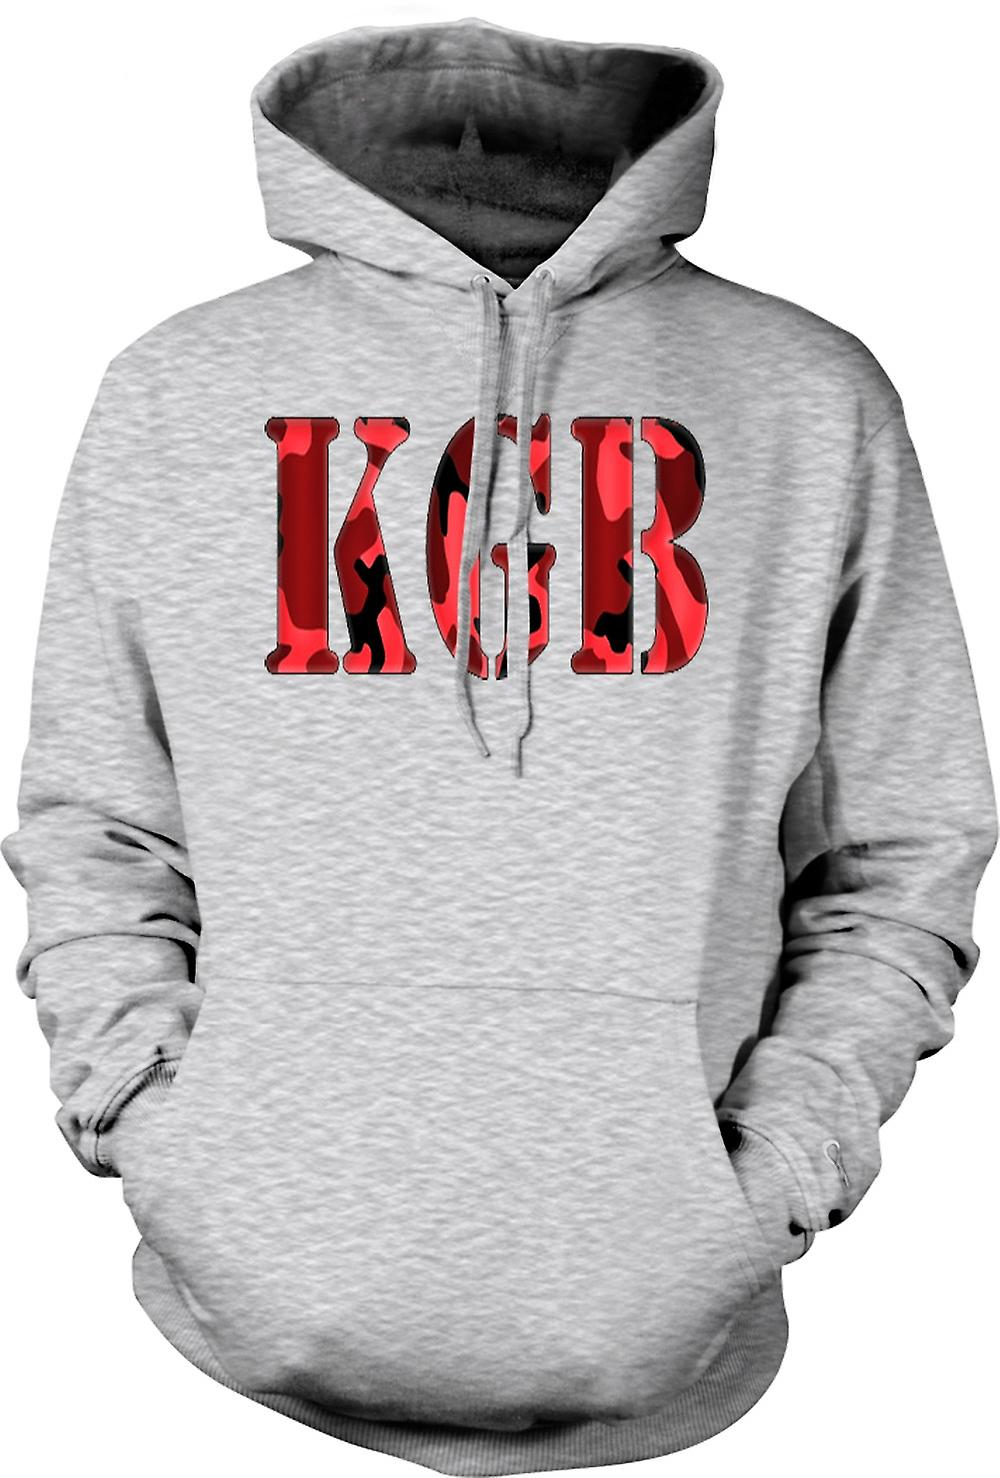 Mens Hoodie - KGB - Russian Intelligence